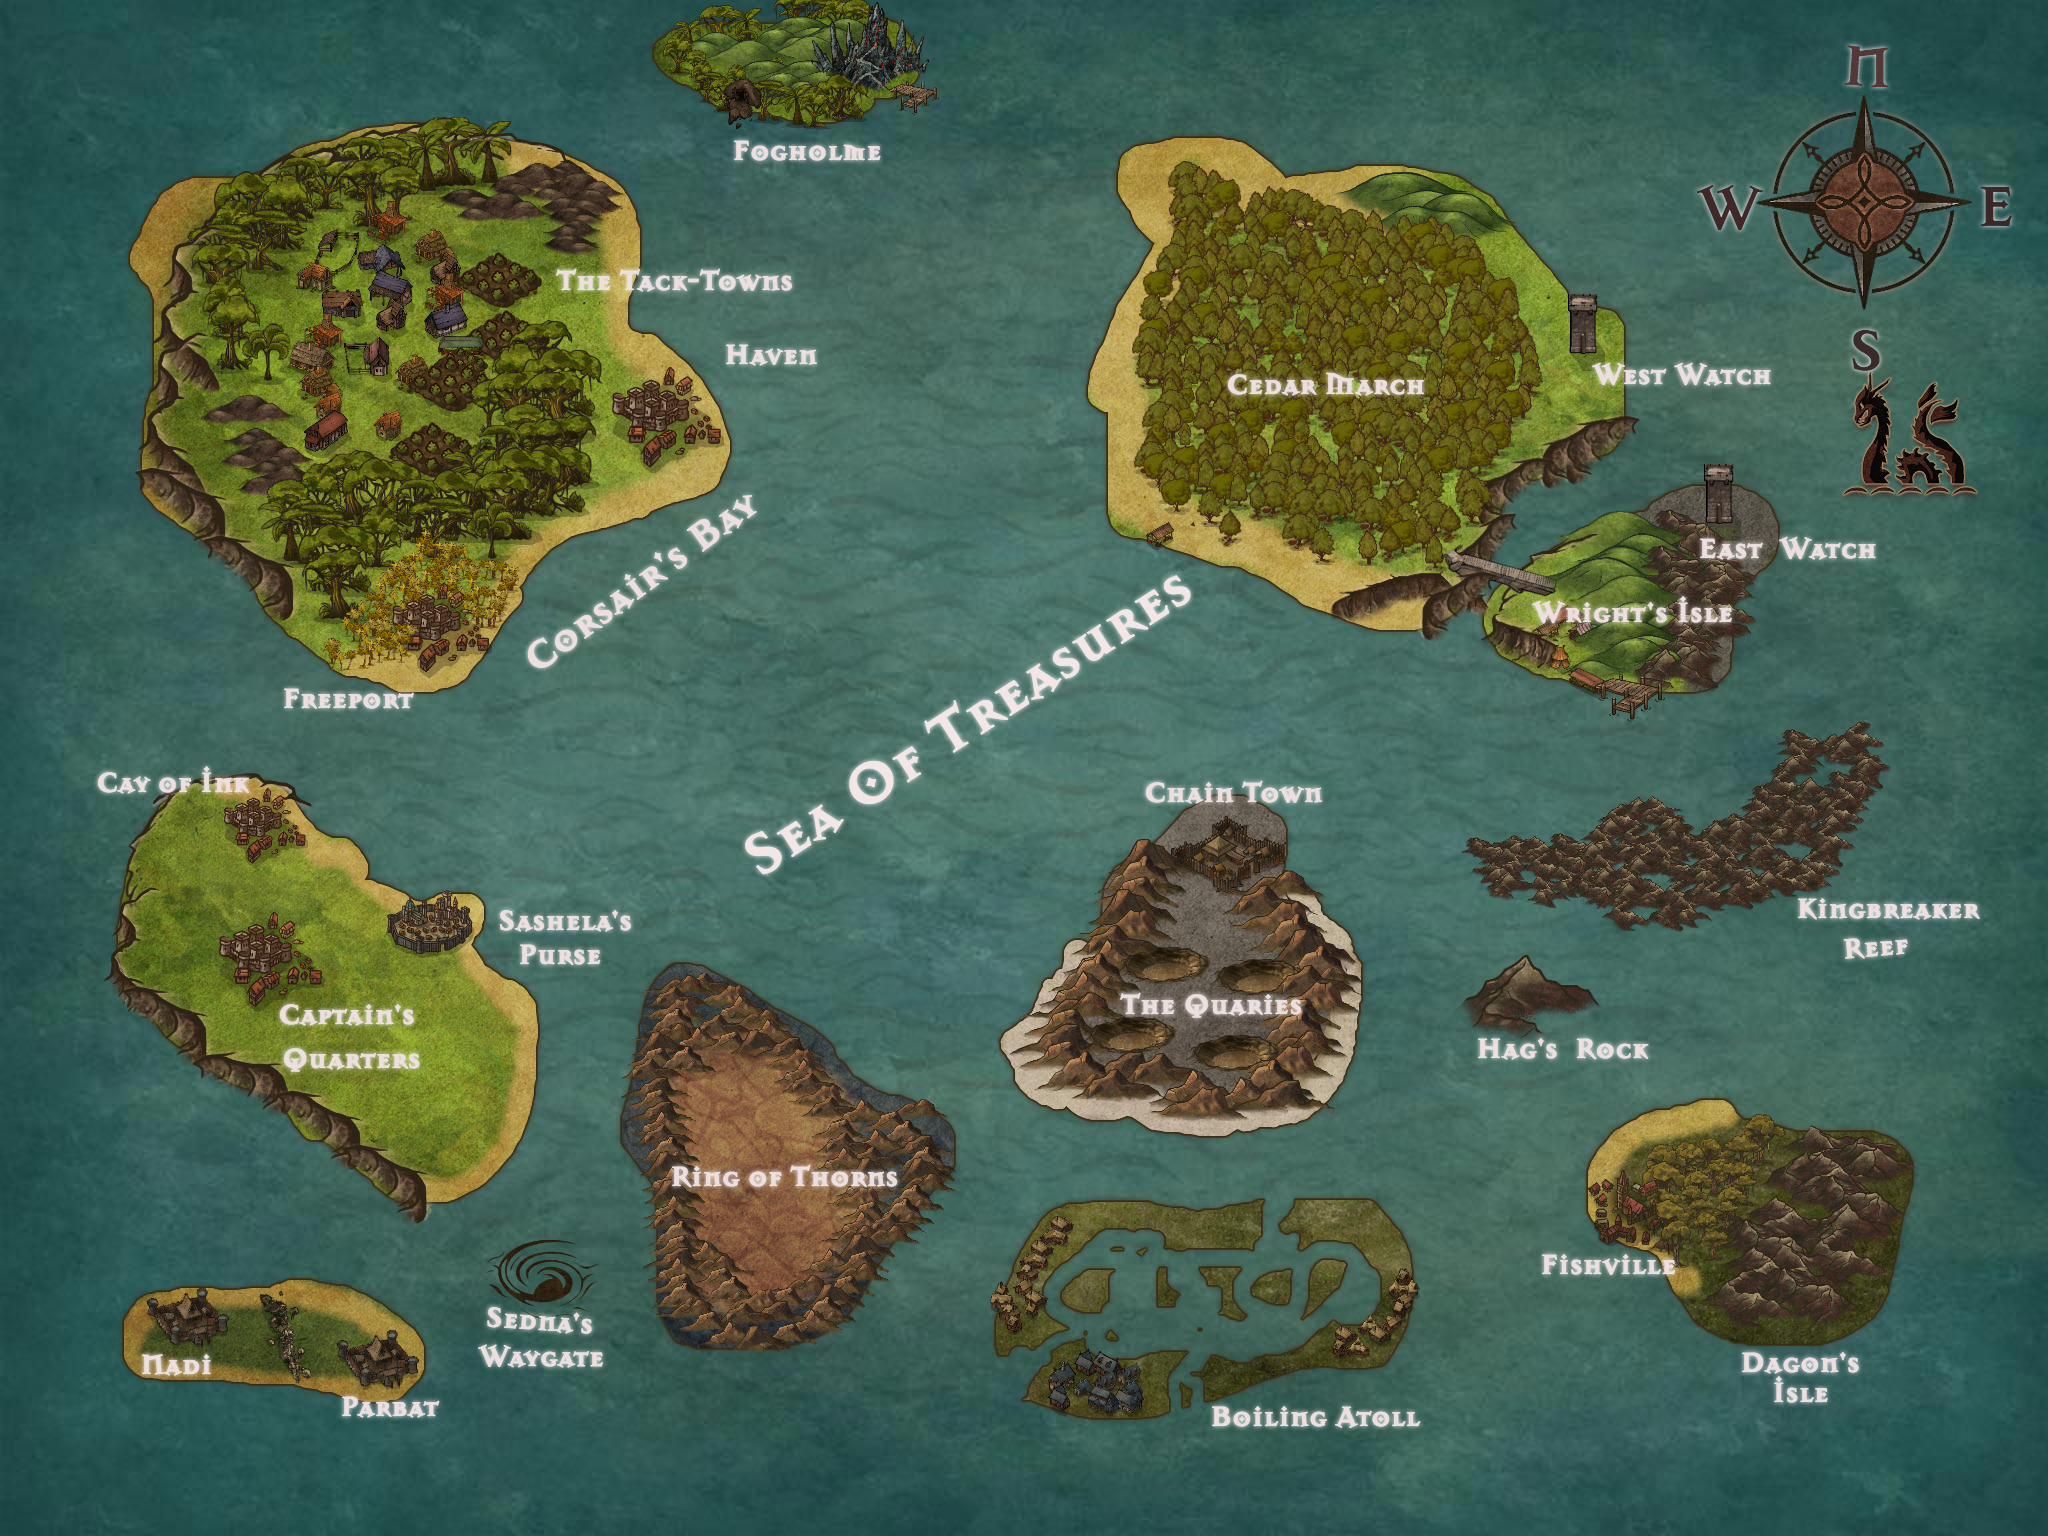 The Pirate Isles